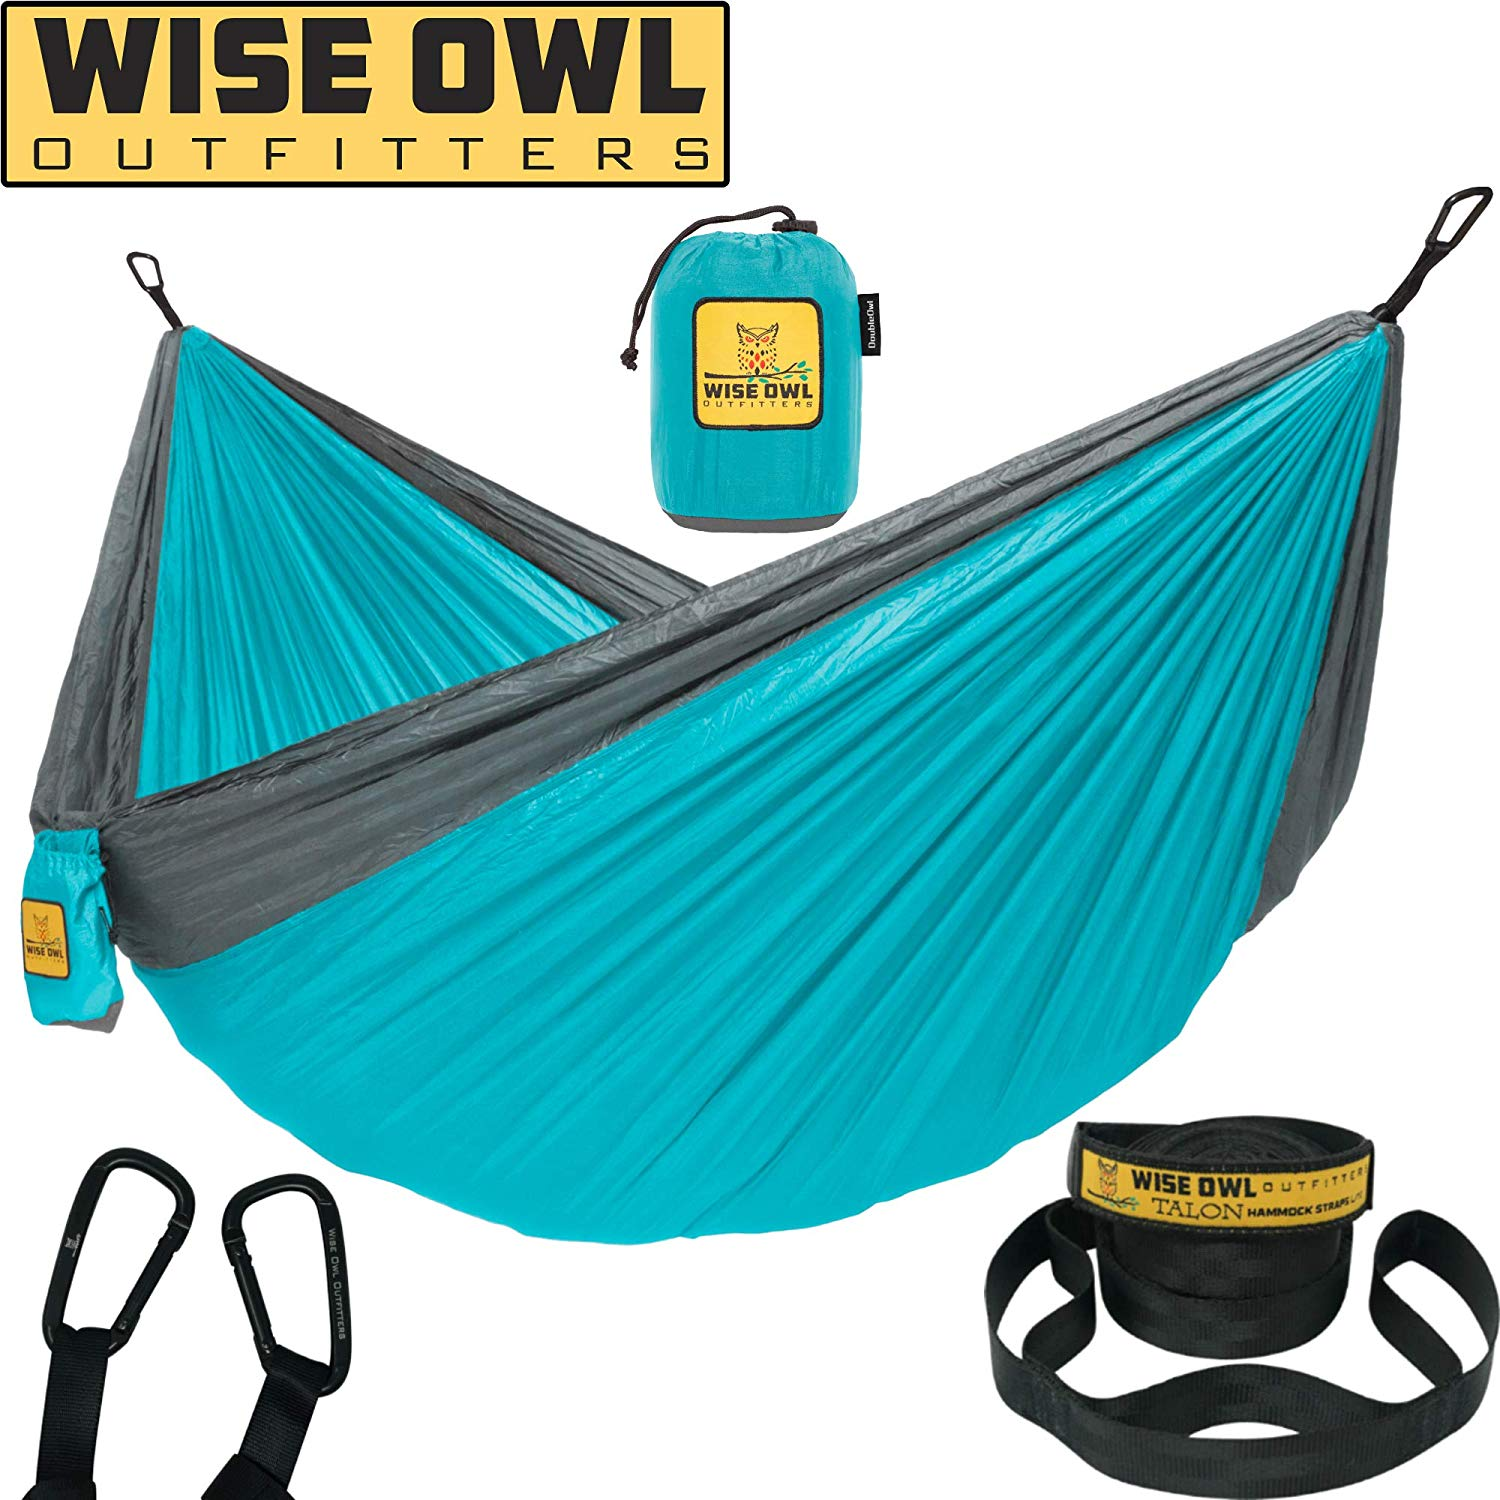 Camping hammock-portable, comfortable, easy to set up!